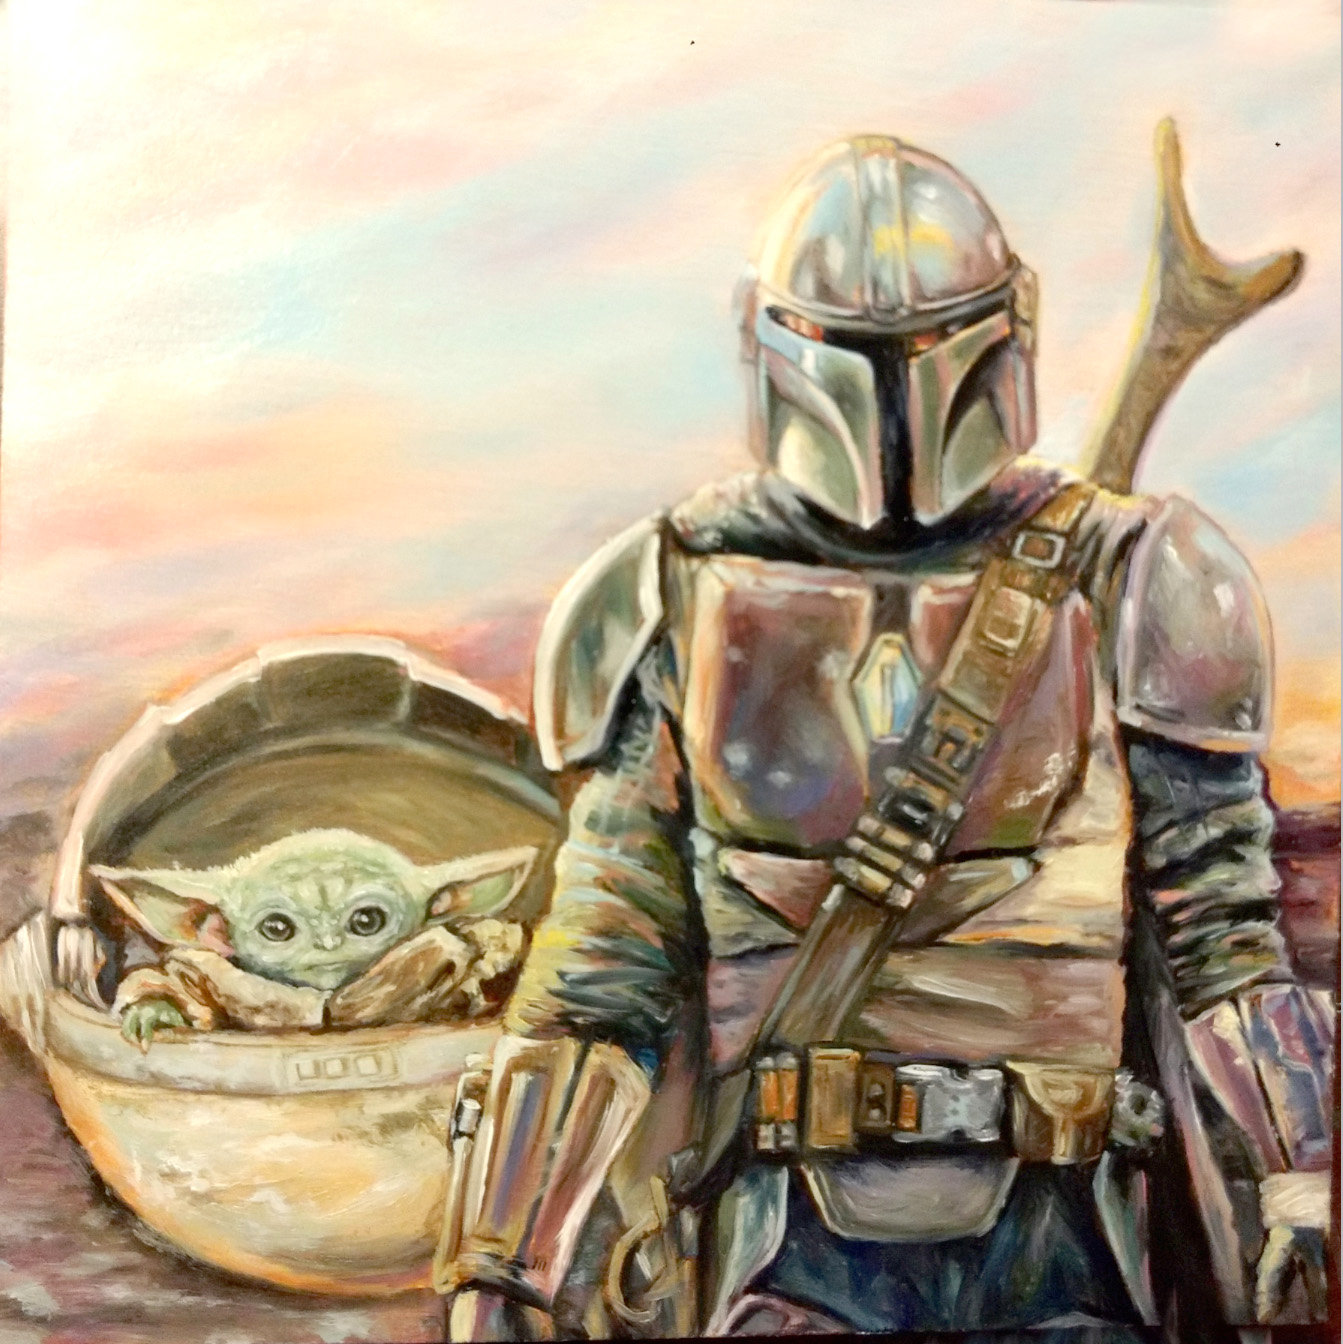 """A NEW DAY,"" oil painting on wood panel by M.B. Hetzel, shows a scene from ""The Mandalorian"" will be shown at the Comic Book/Pop Culture Art Show."